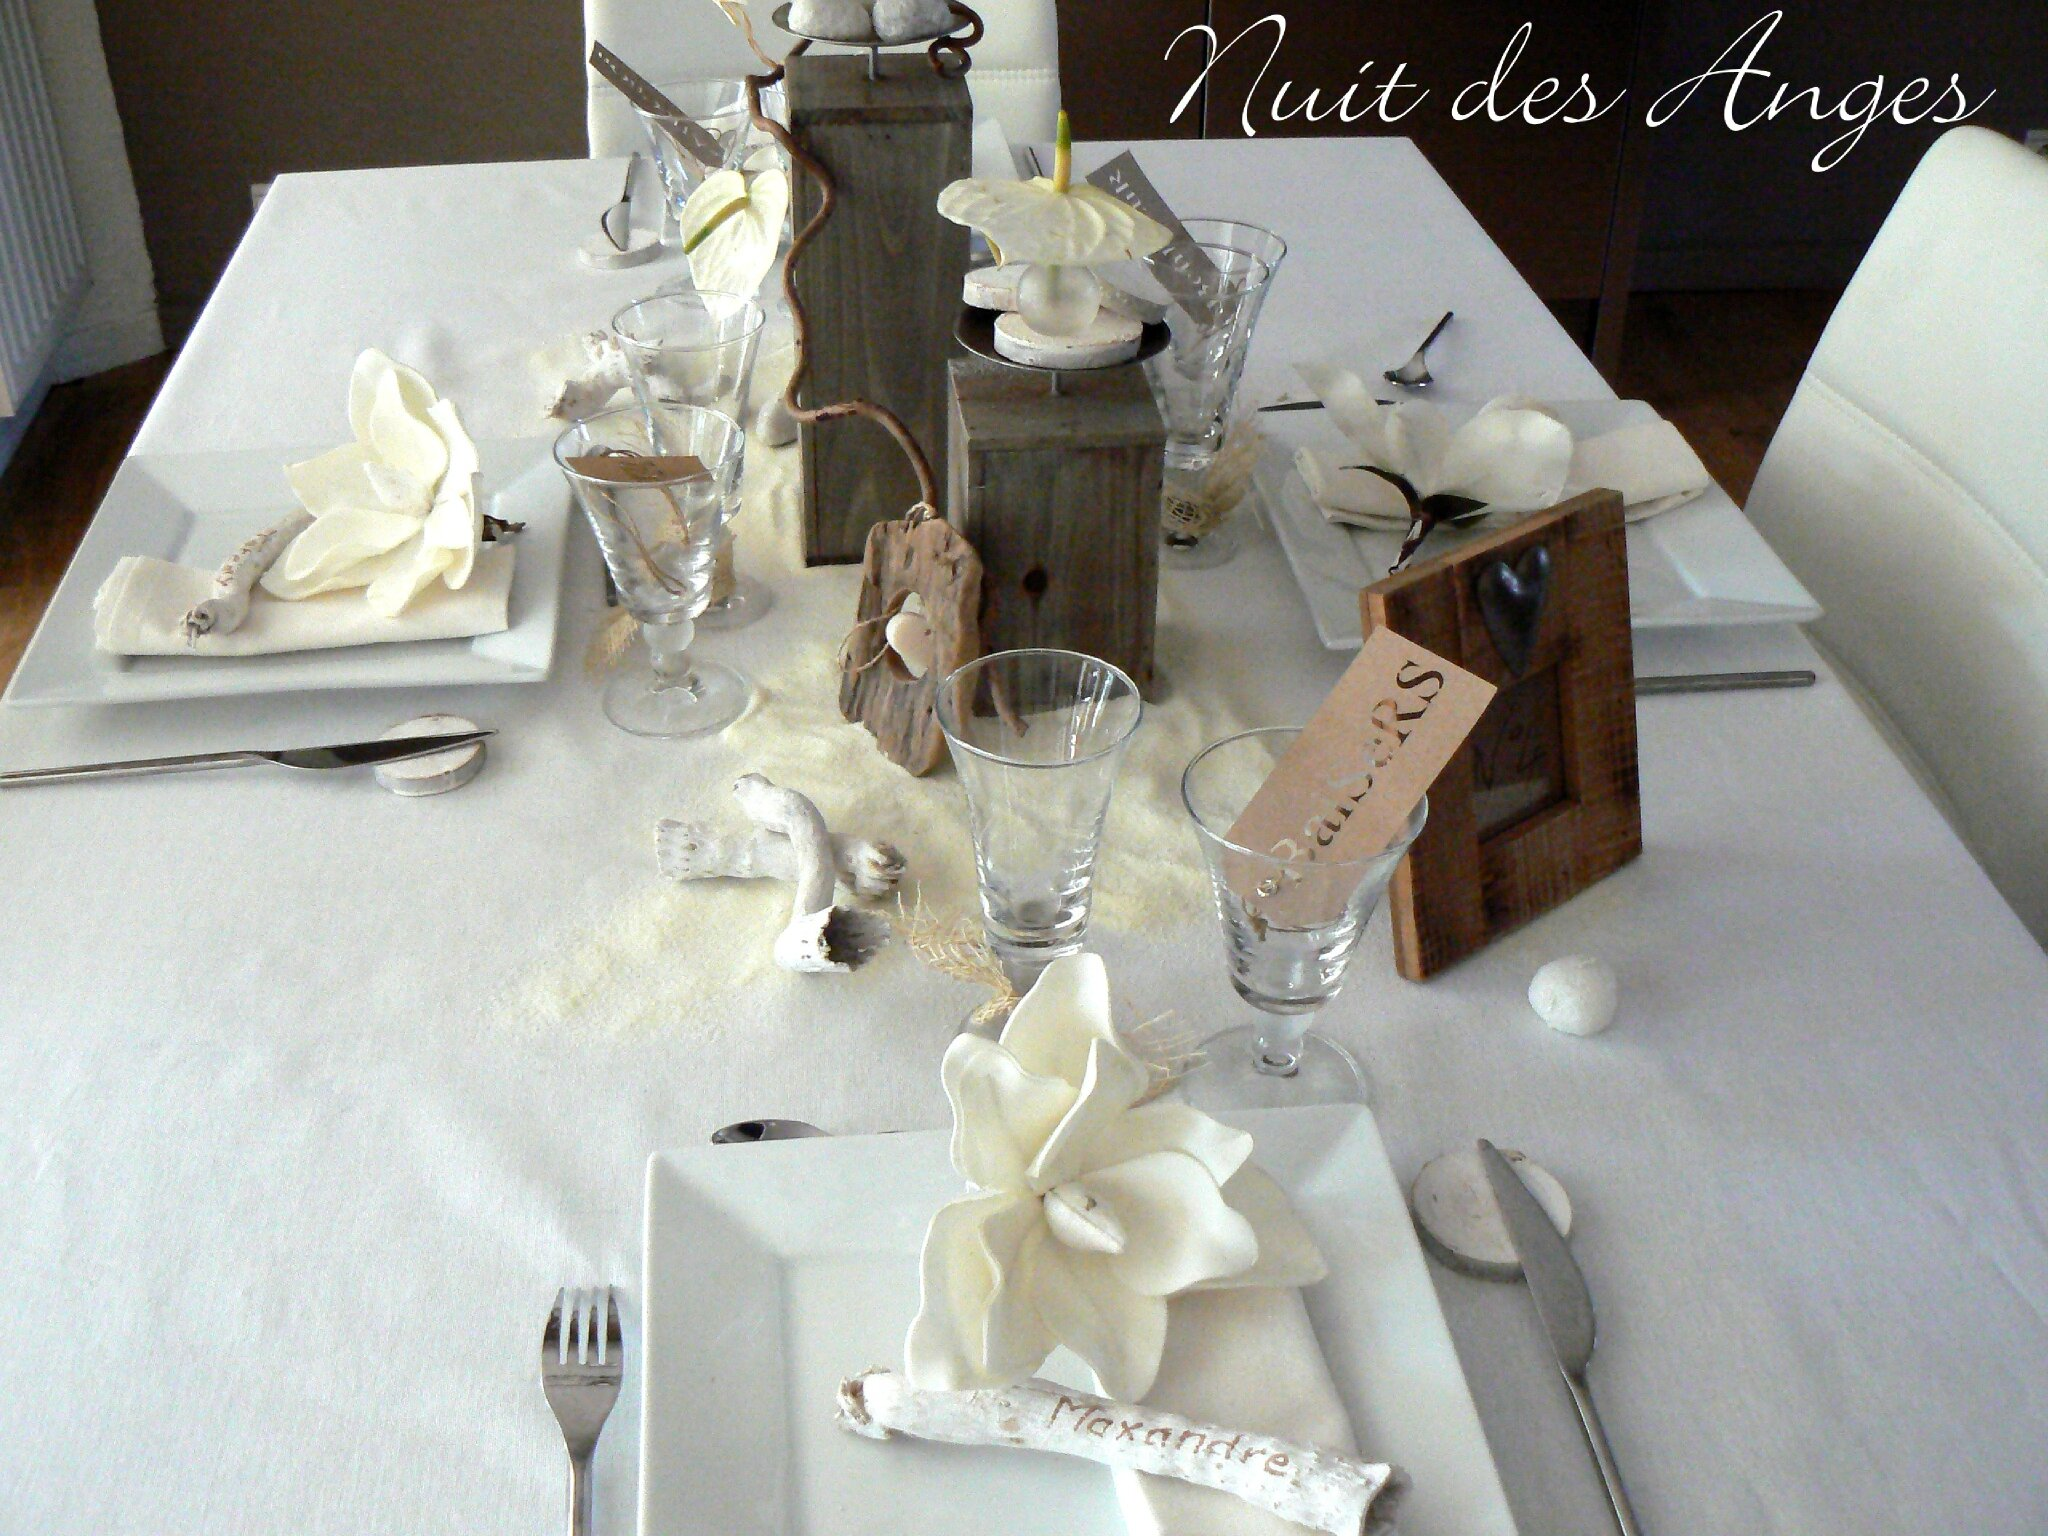 Nuit des anges d coratrice de mariage d coration de table for Decoration de bois flotte